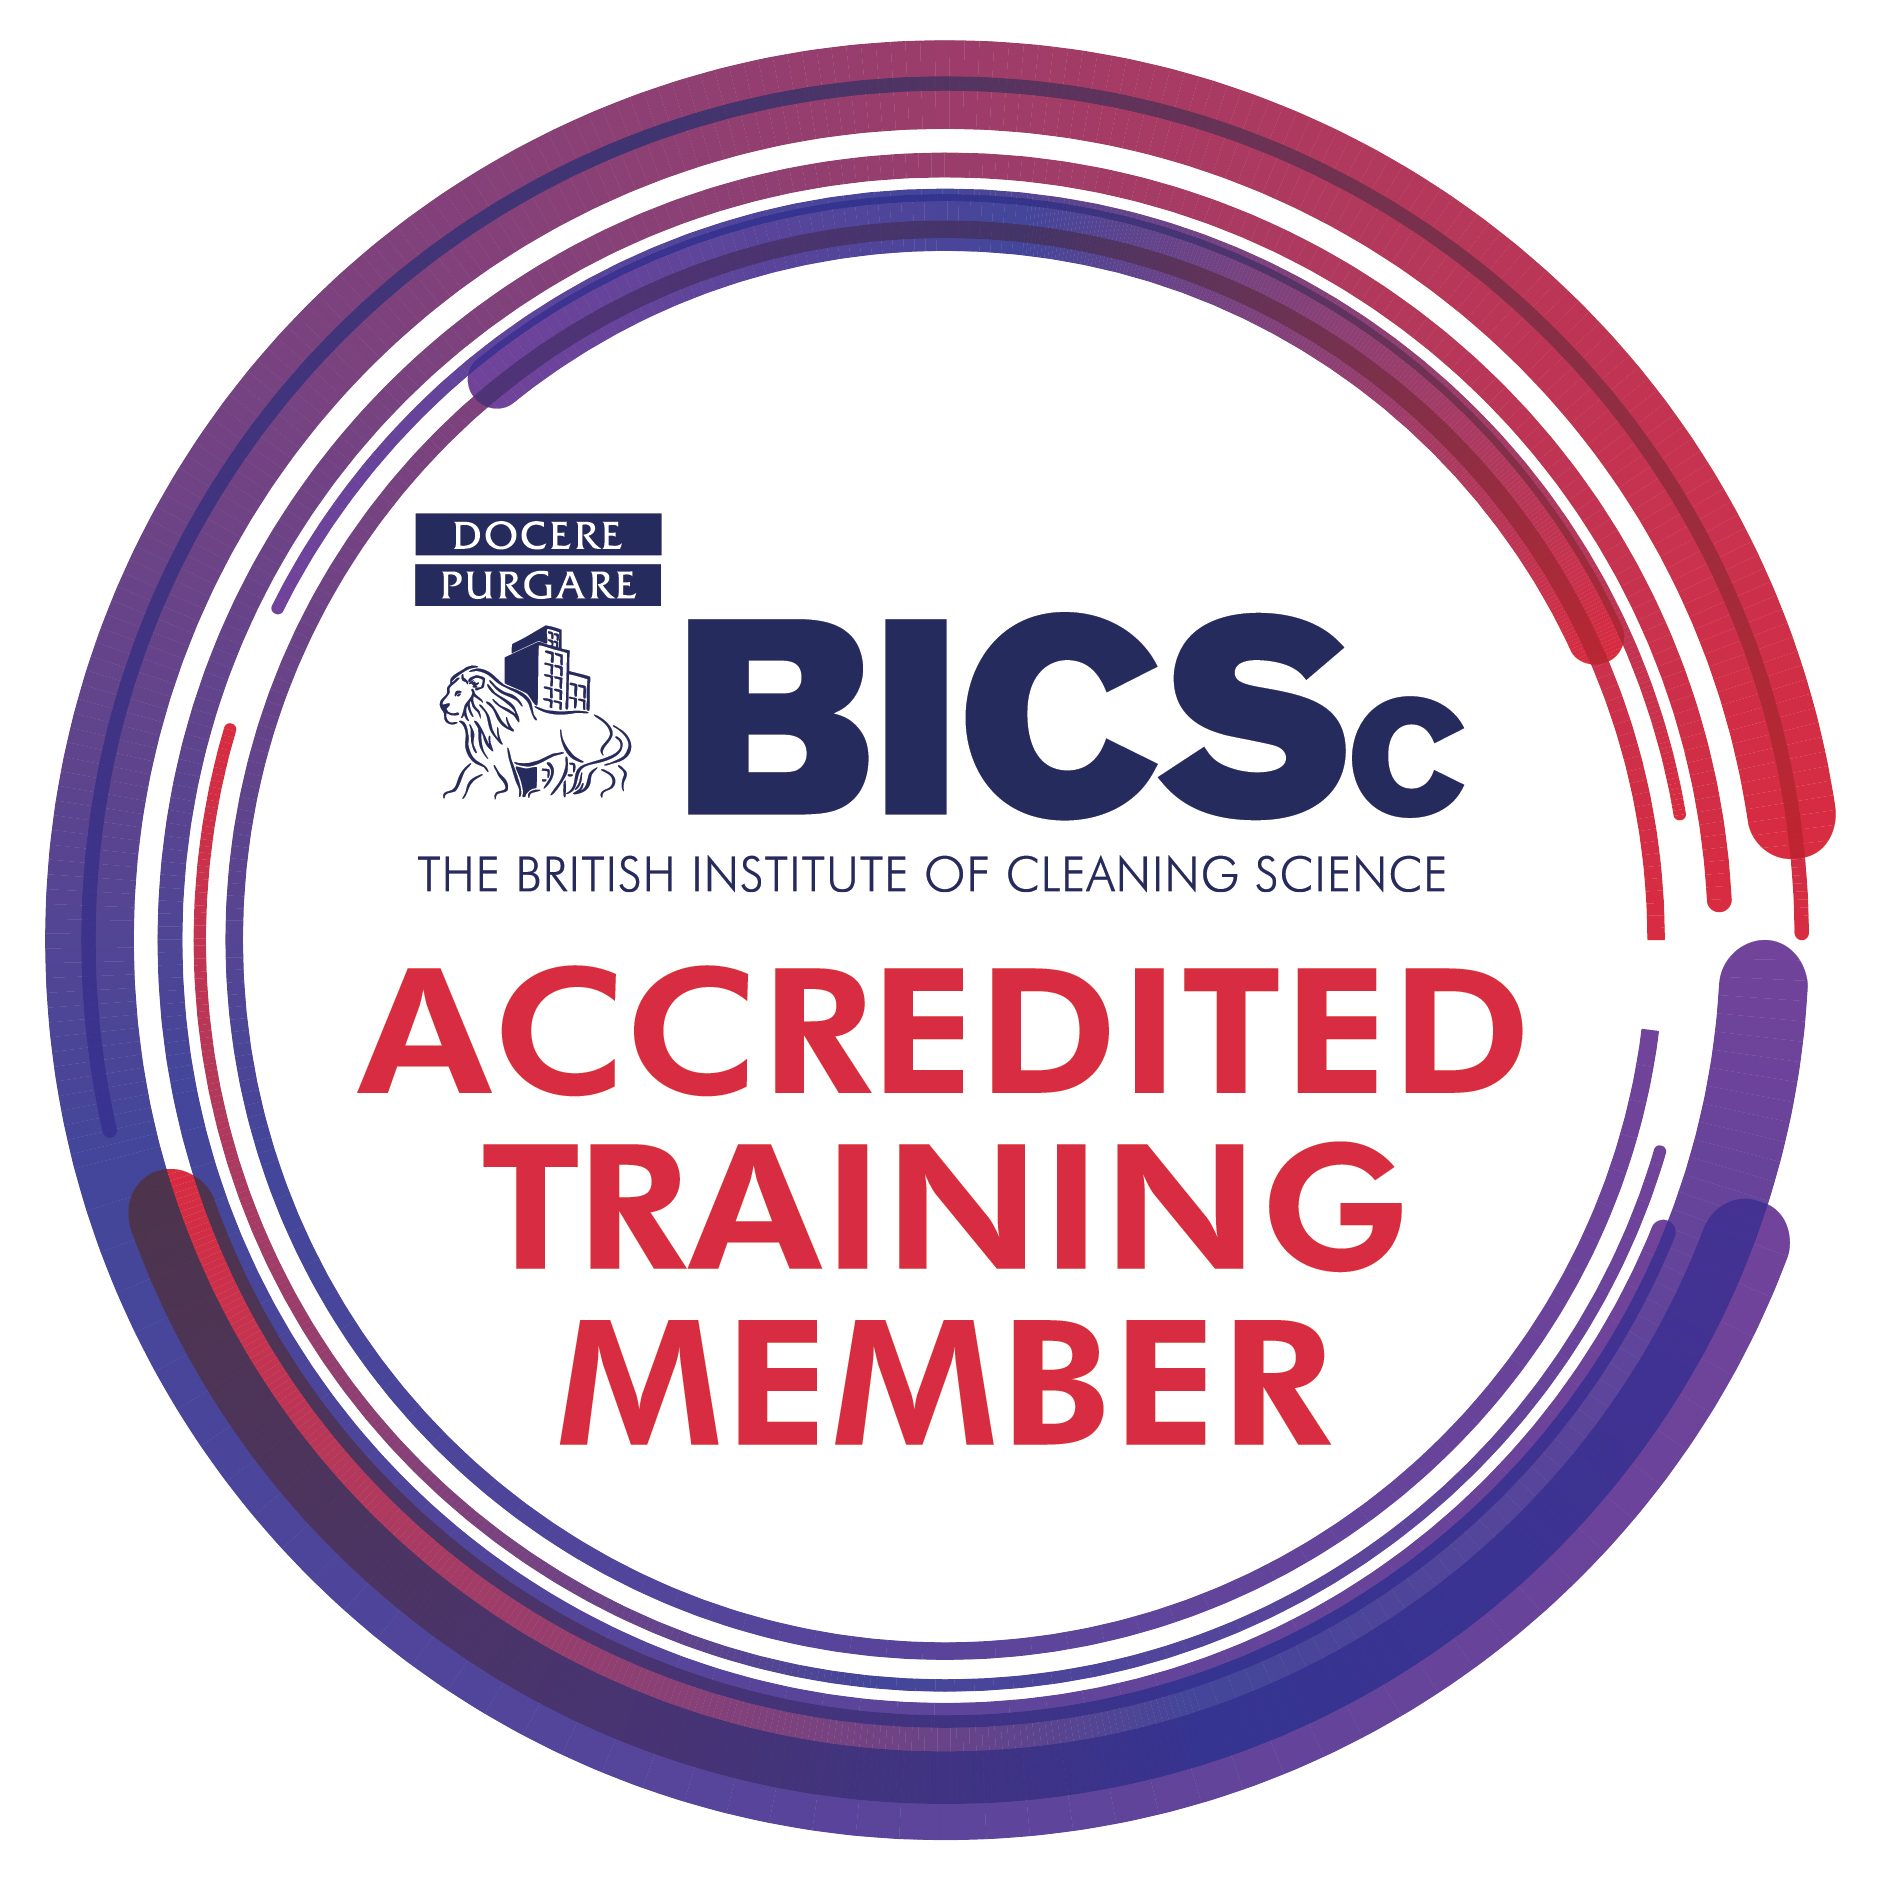 BICSc Accredited Training Member